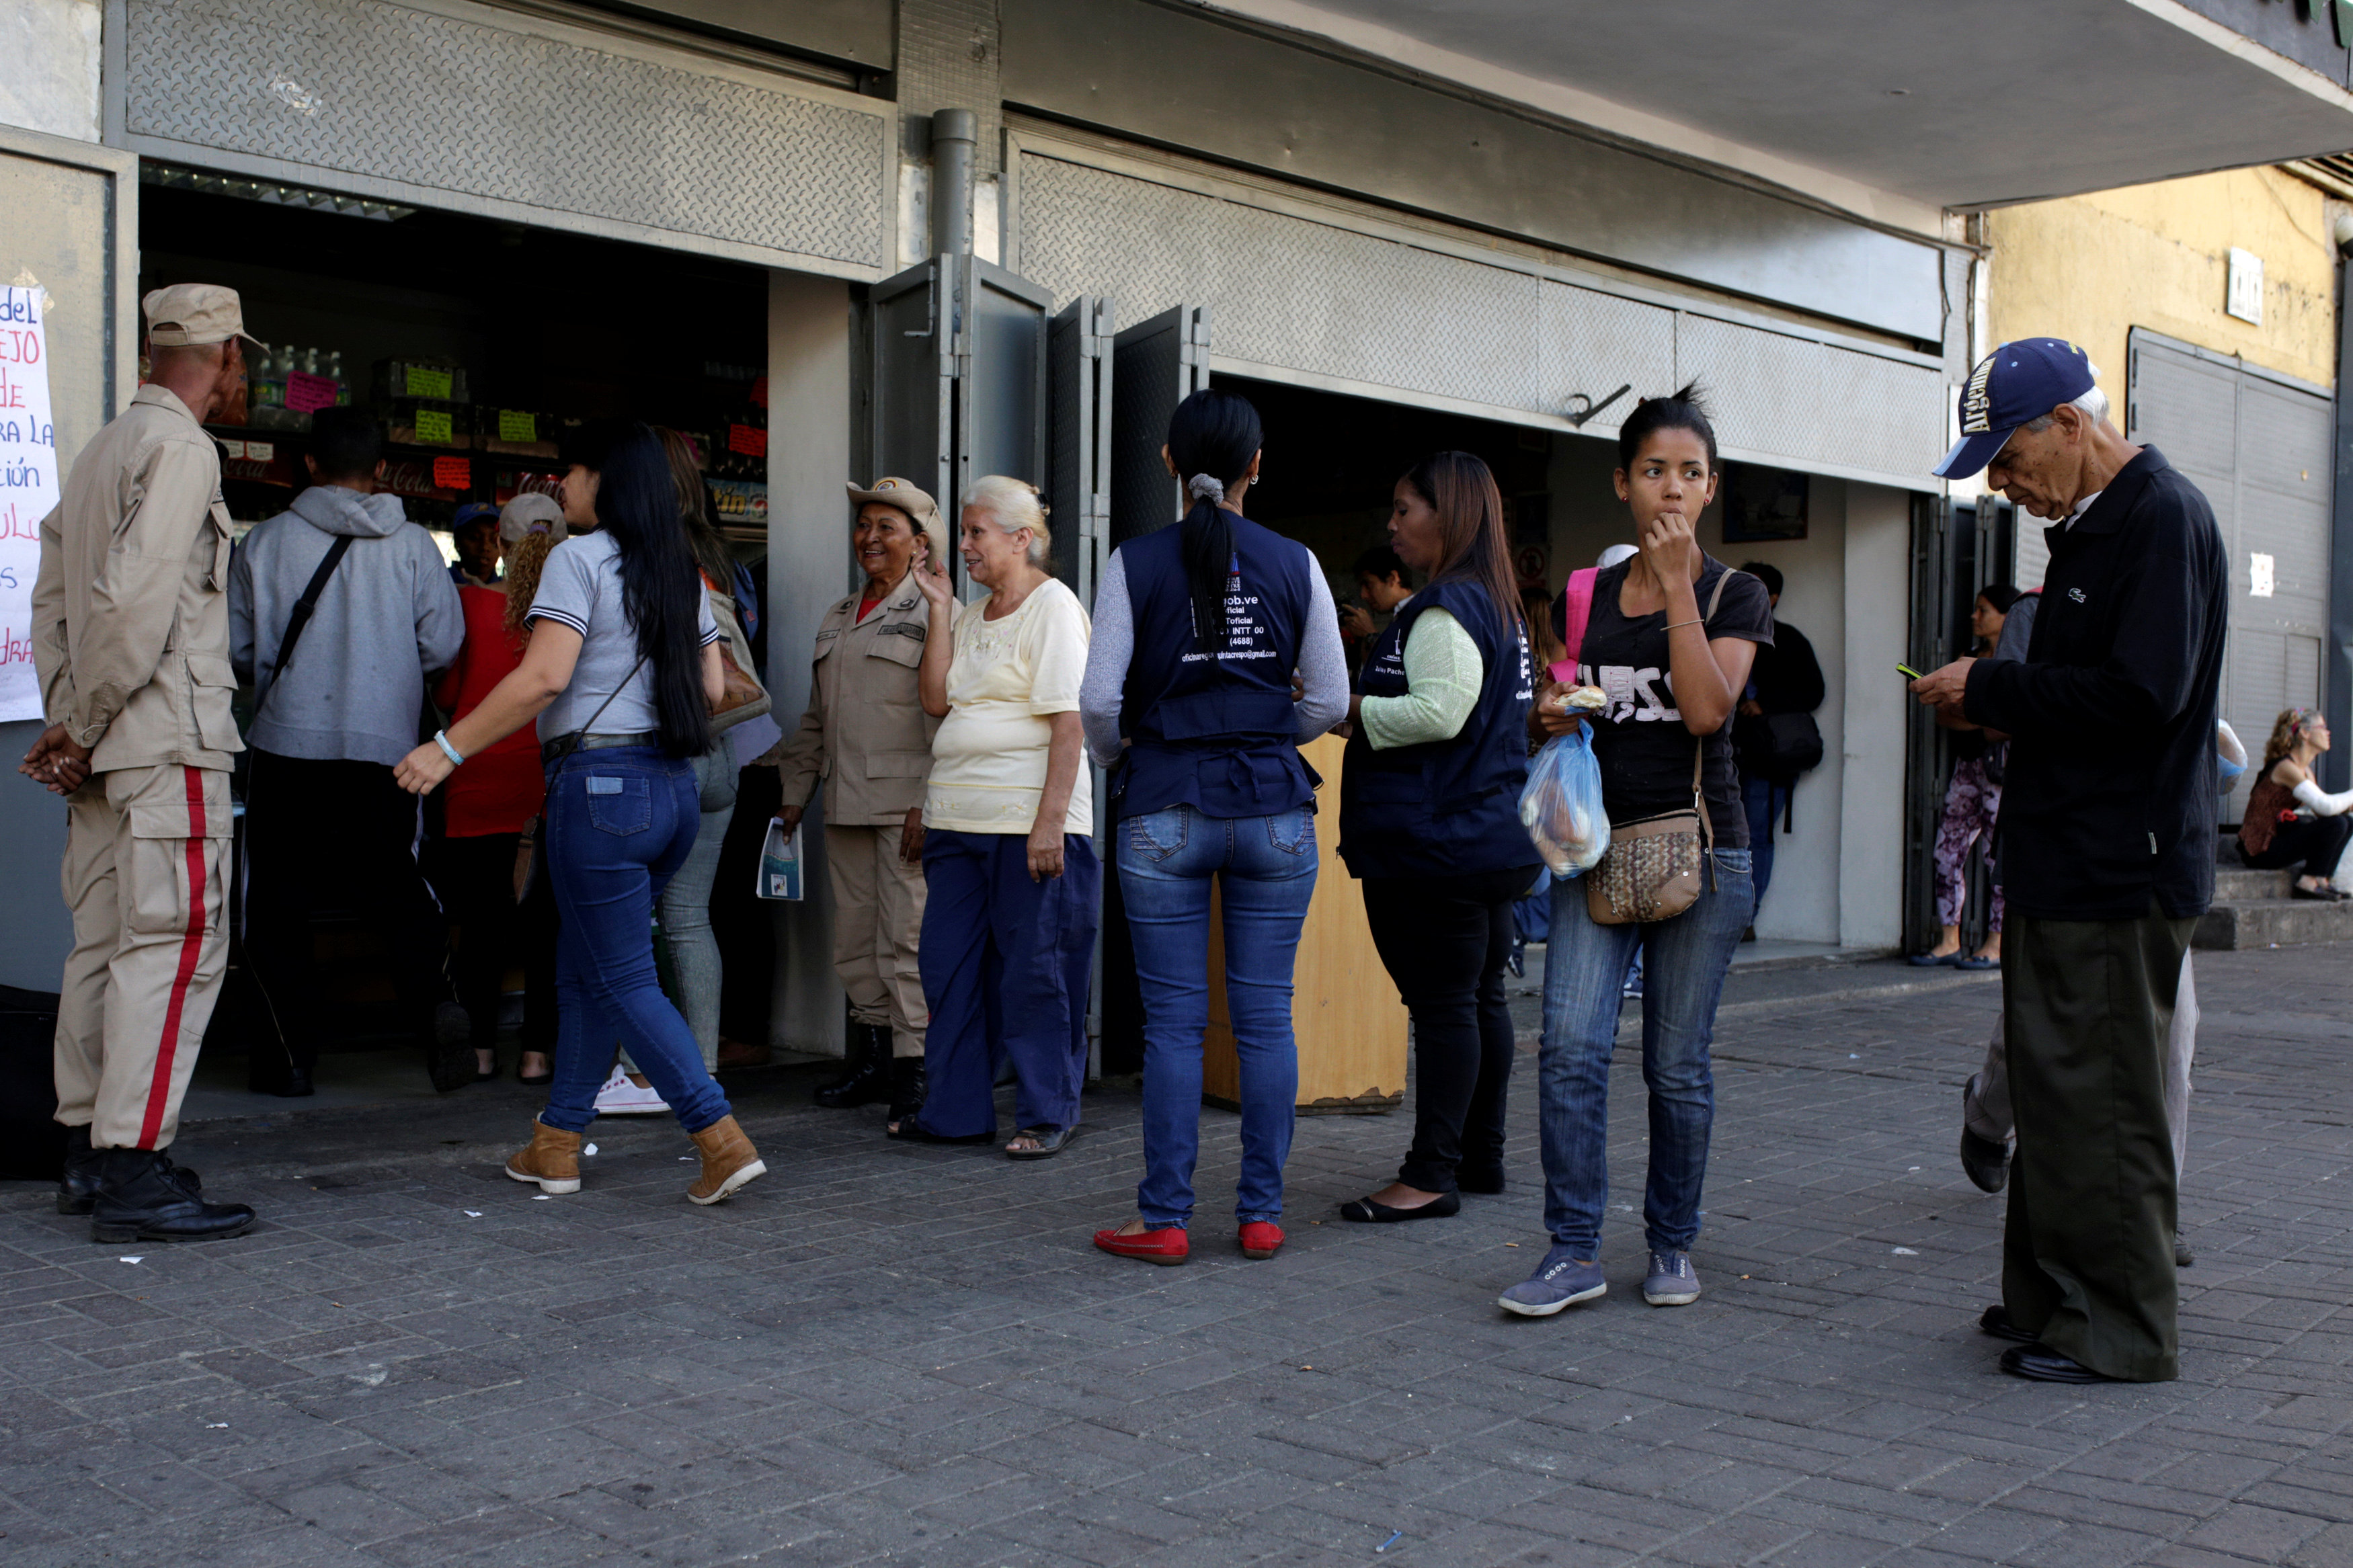 Militia officers stand guard at the entrance of a bakery as people line up to buy bread in Caracas, Venezuela on March 17, 2017. (REUTERS/Marco Bello)